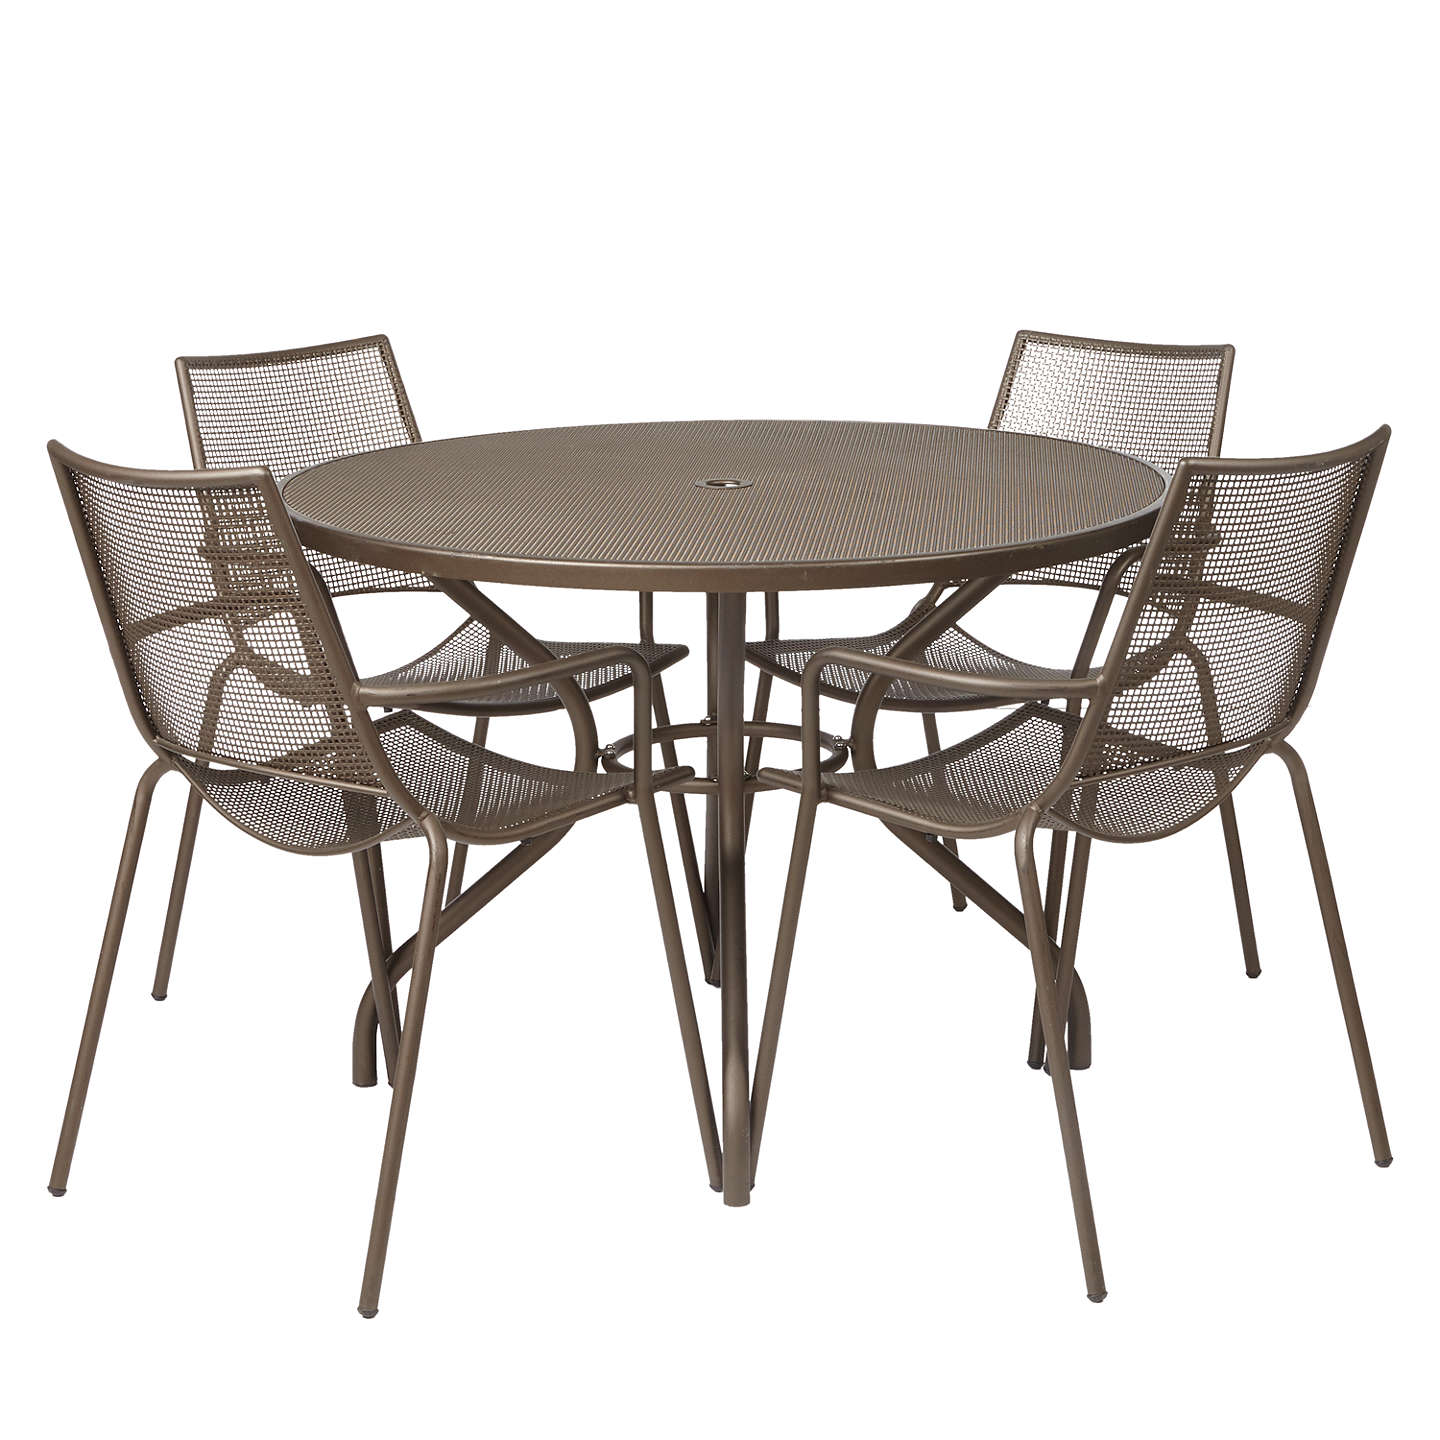 John Lewis Ala Mesh 4 Seater Garden Dining Table And